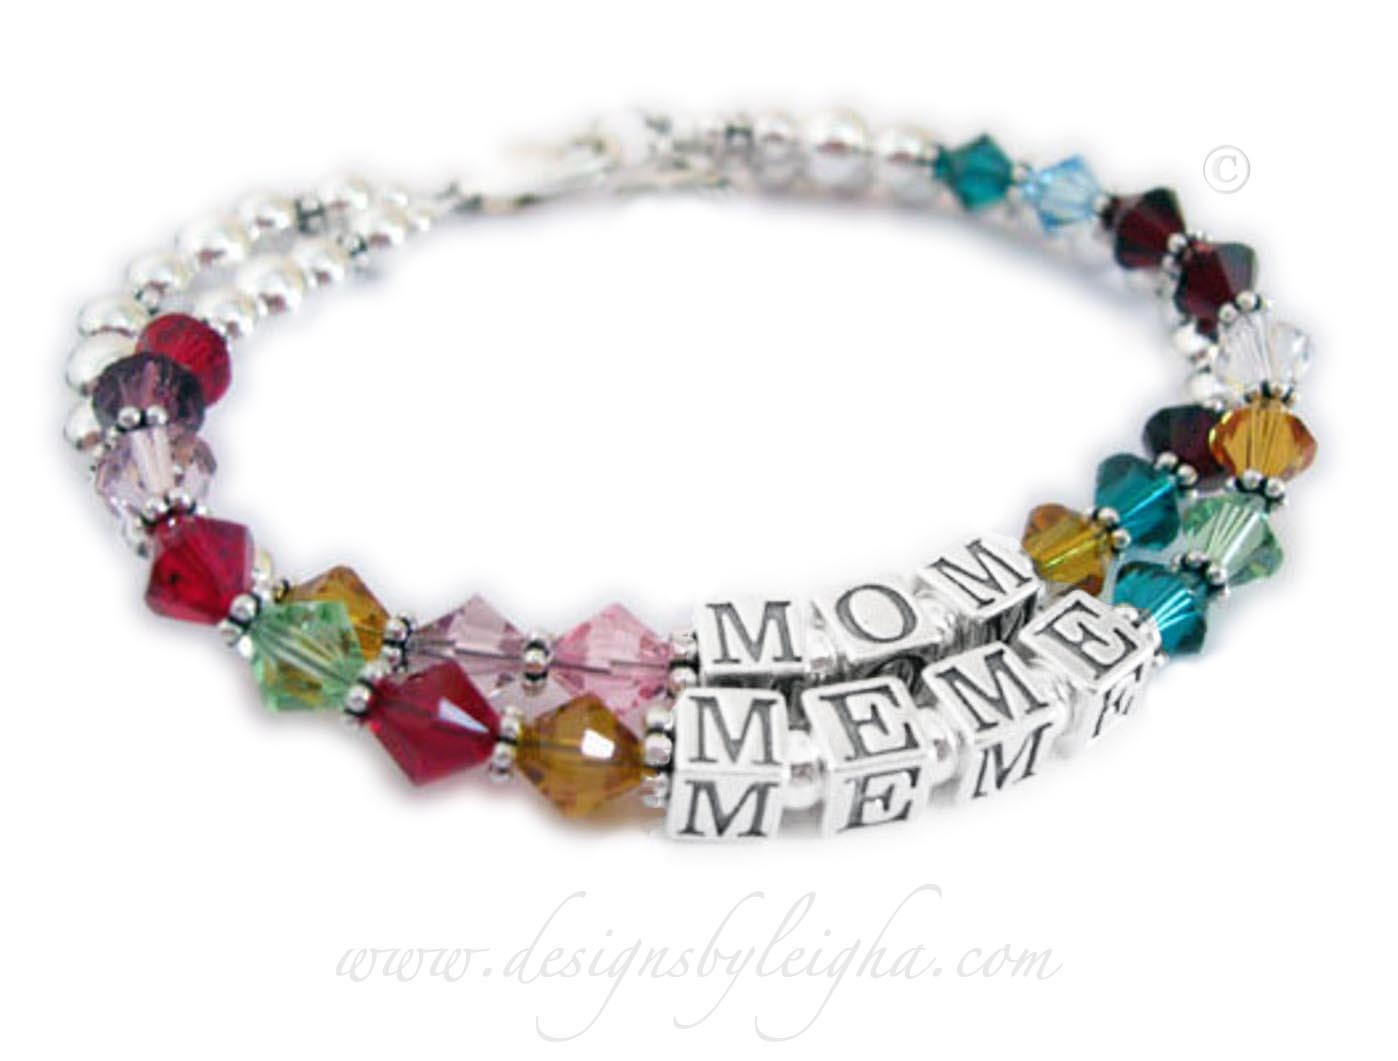 DBL-C12This is a 2 string bracelet with a lobster claw clasp. The first string says MOM with her kids' birthstones. The second string says MEME with her grandkids' birthstones. They added a Beaded Heart charm to their order.